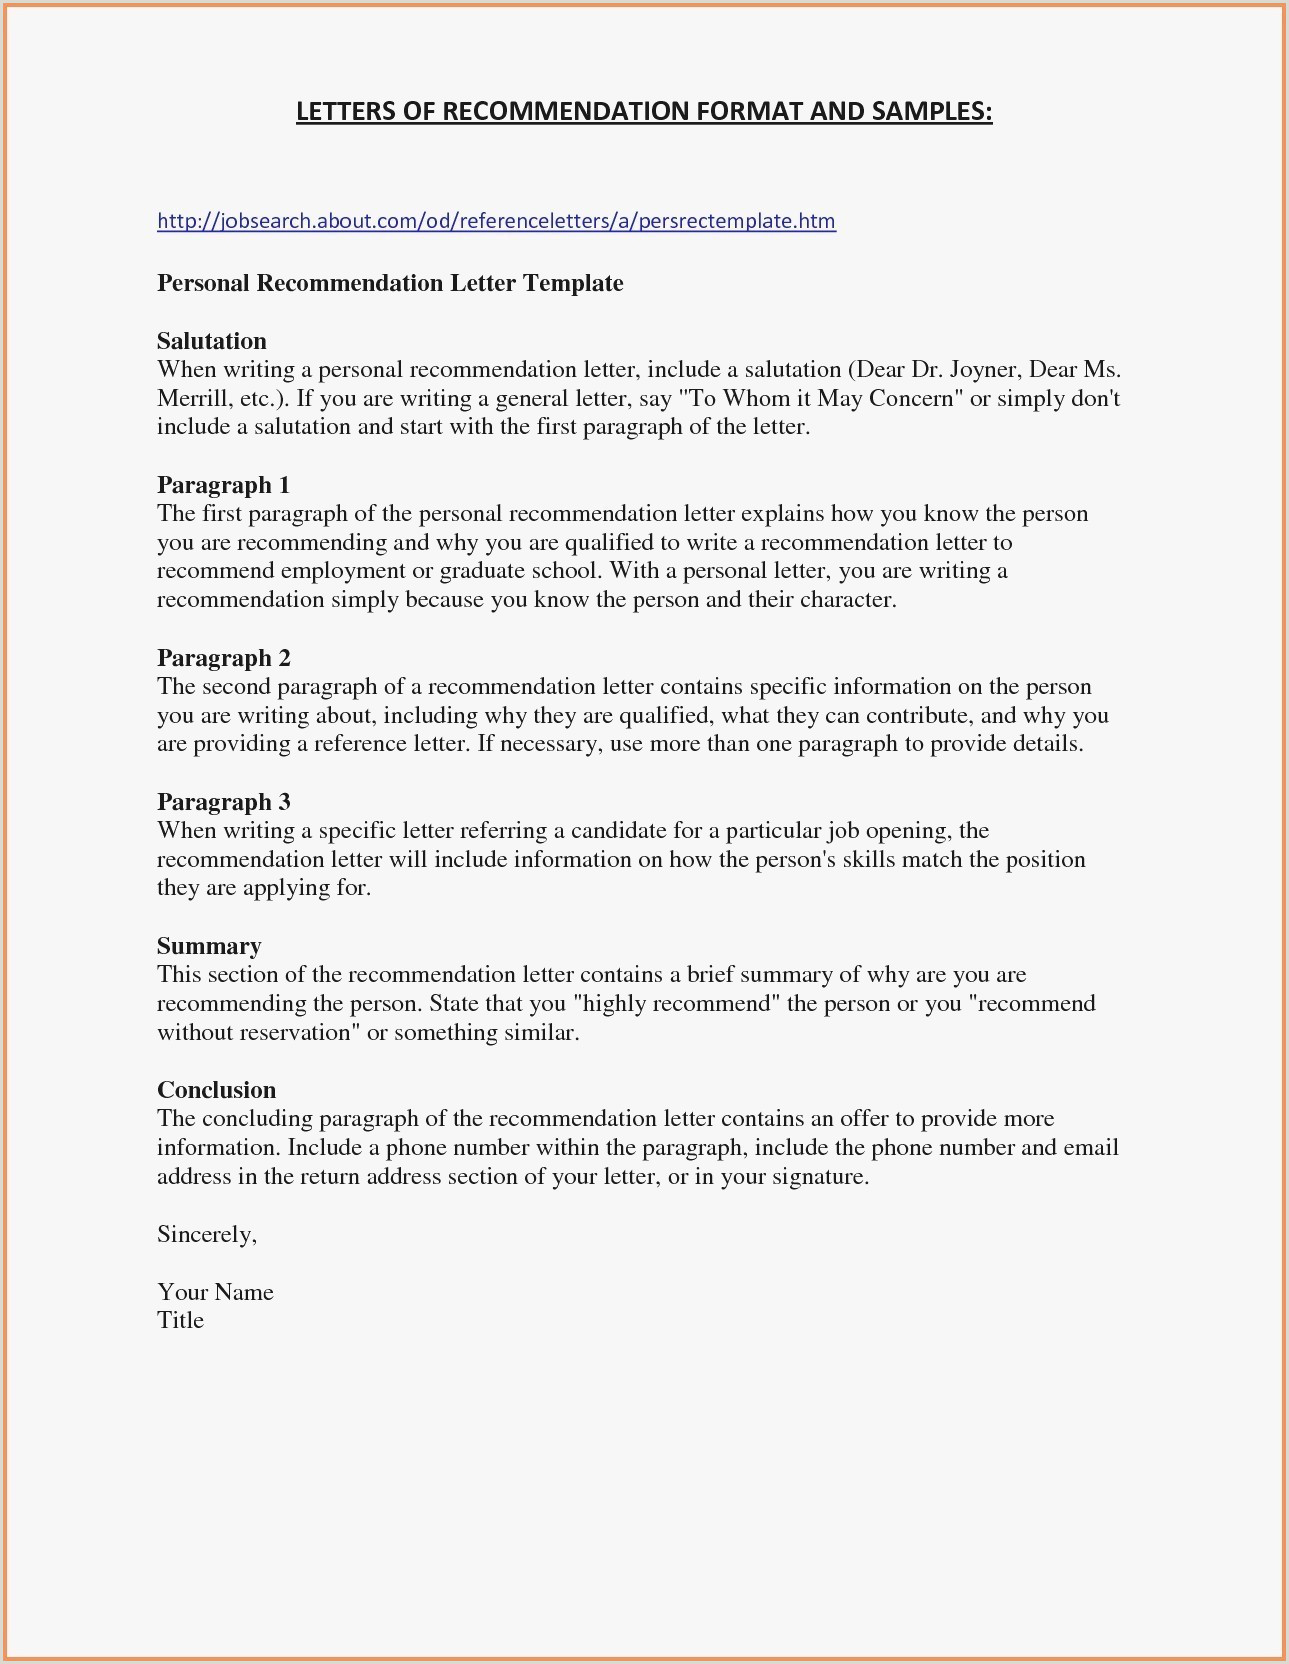 Personal Letter Template Word Format Business Correspondence